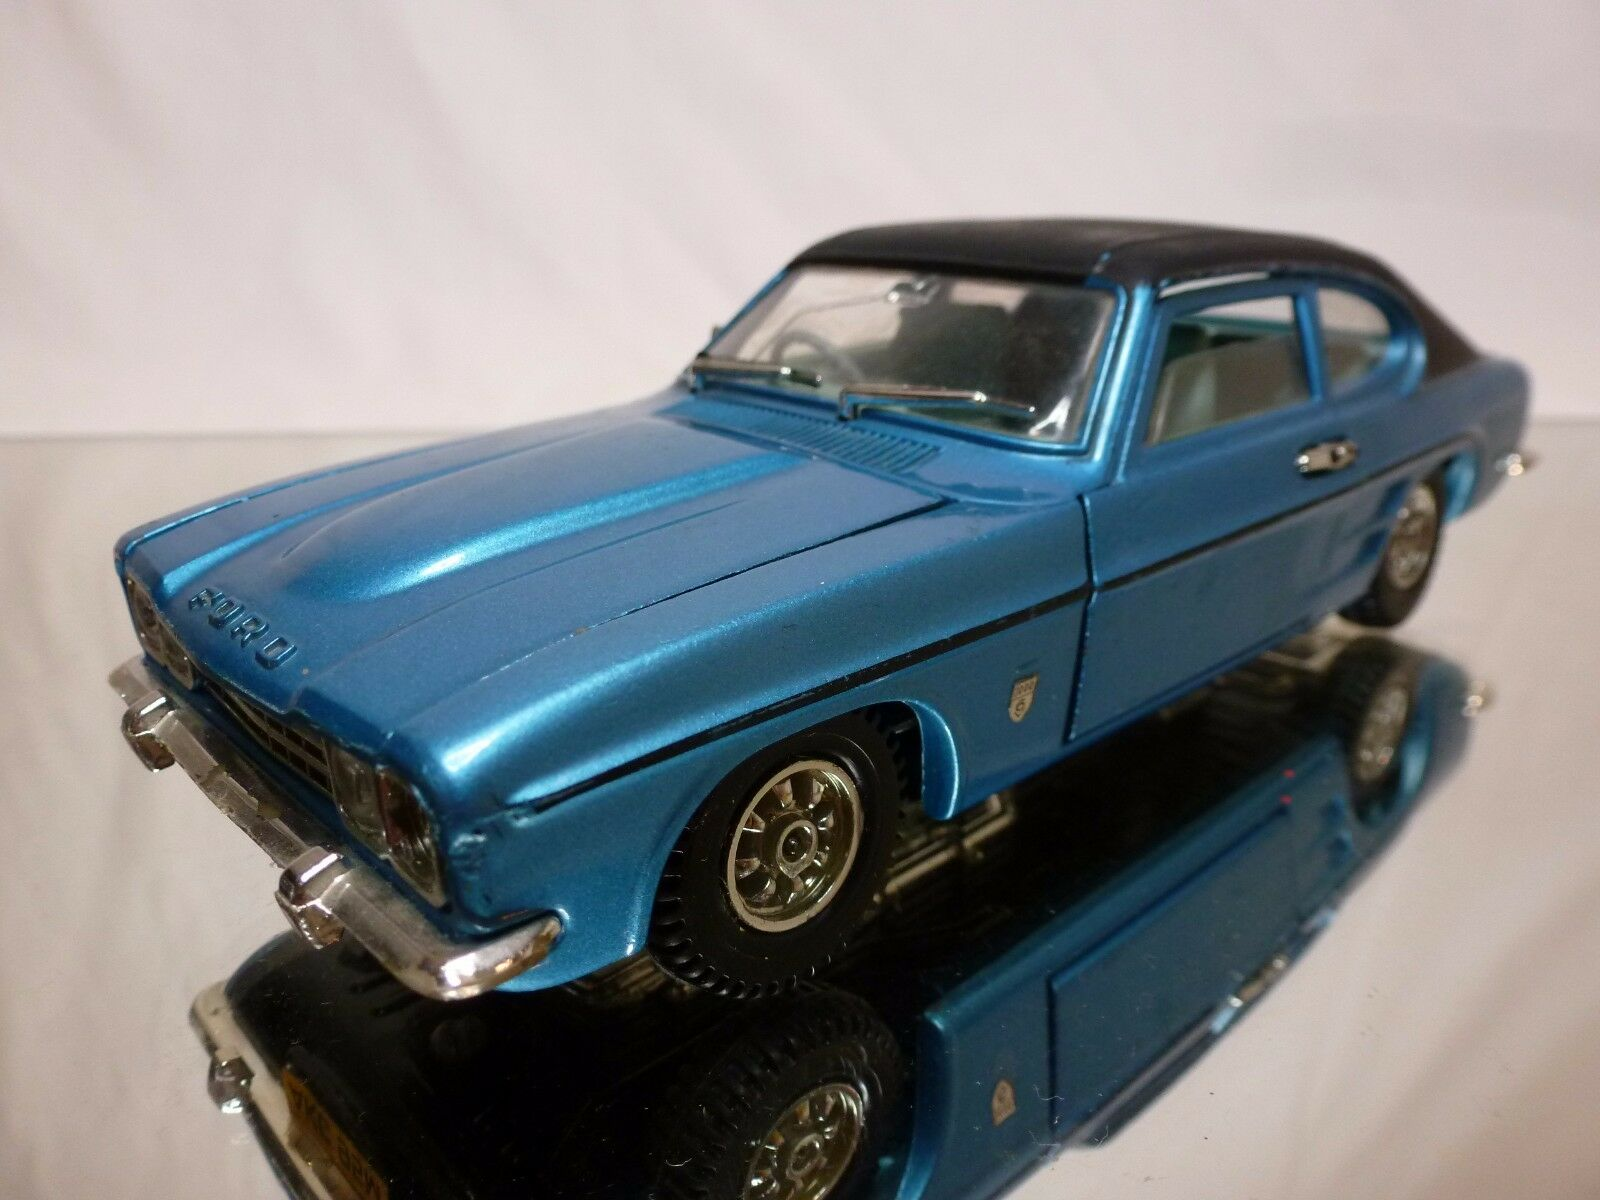 DINKY TOYS 2162 FORD CAPRI GXL - RHD - METALLIC blueeE 1 25 - GOOD CONDITION